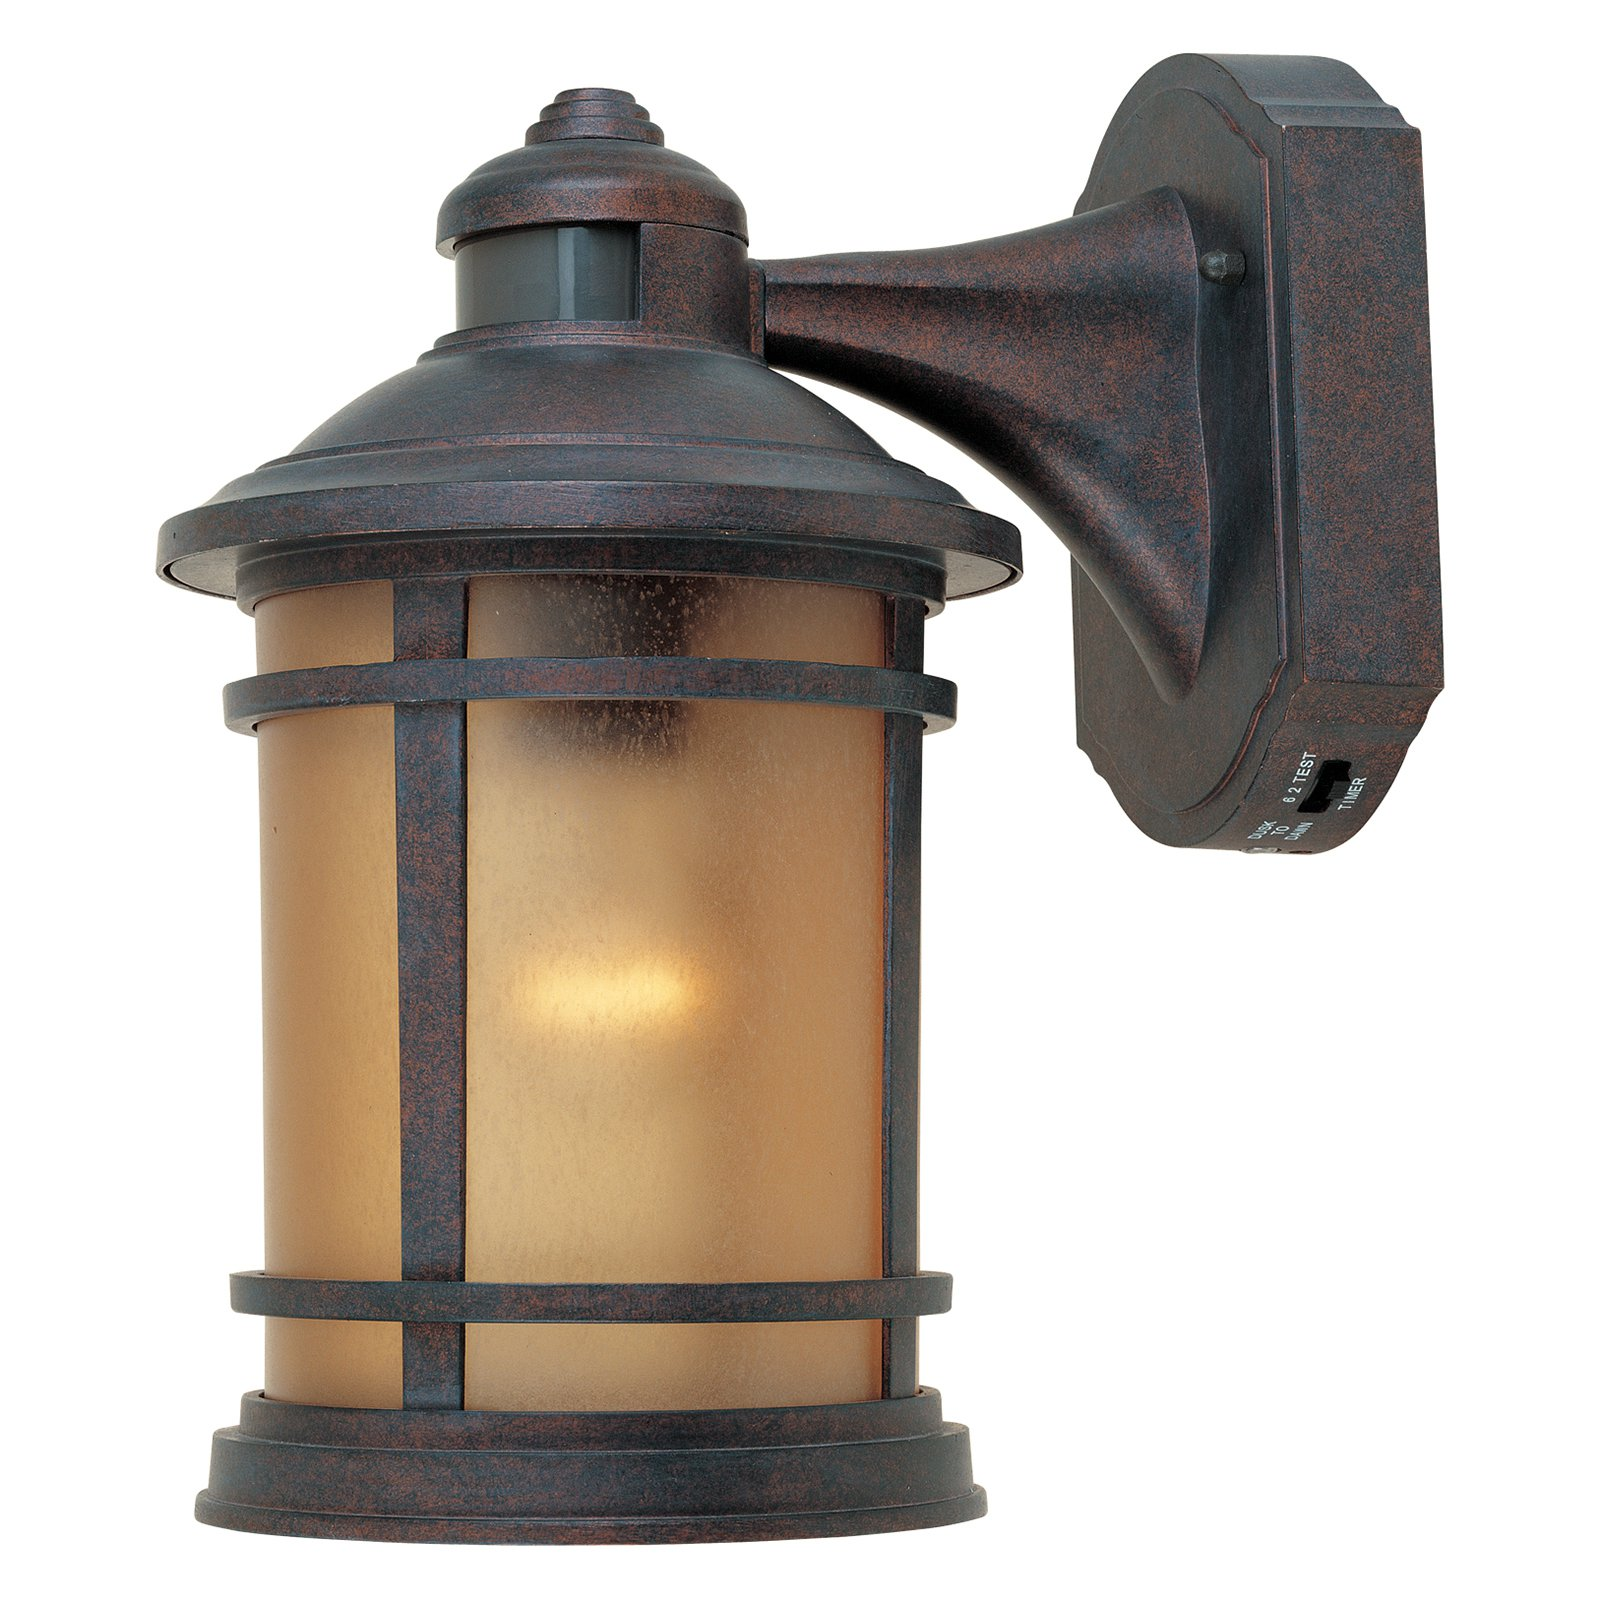 Designers Fountain Outdoor 2371MD Sedona Motion Detector Wall Lantern